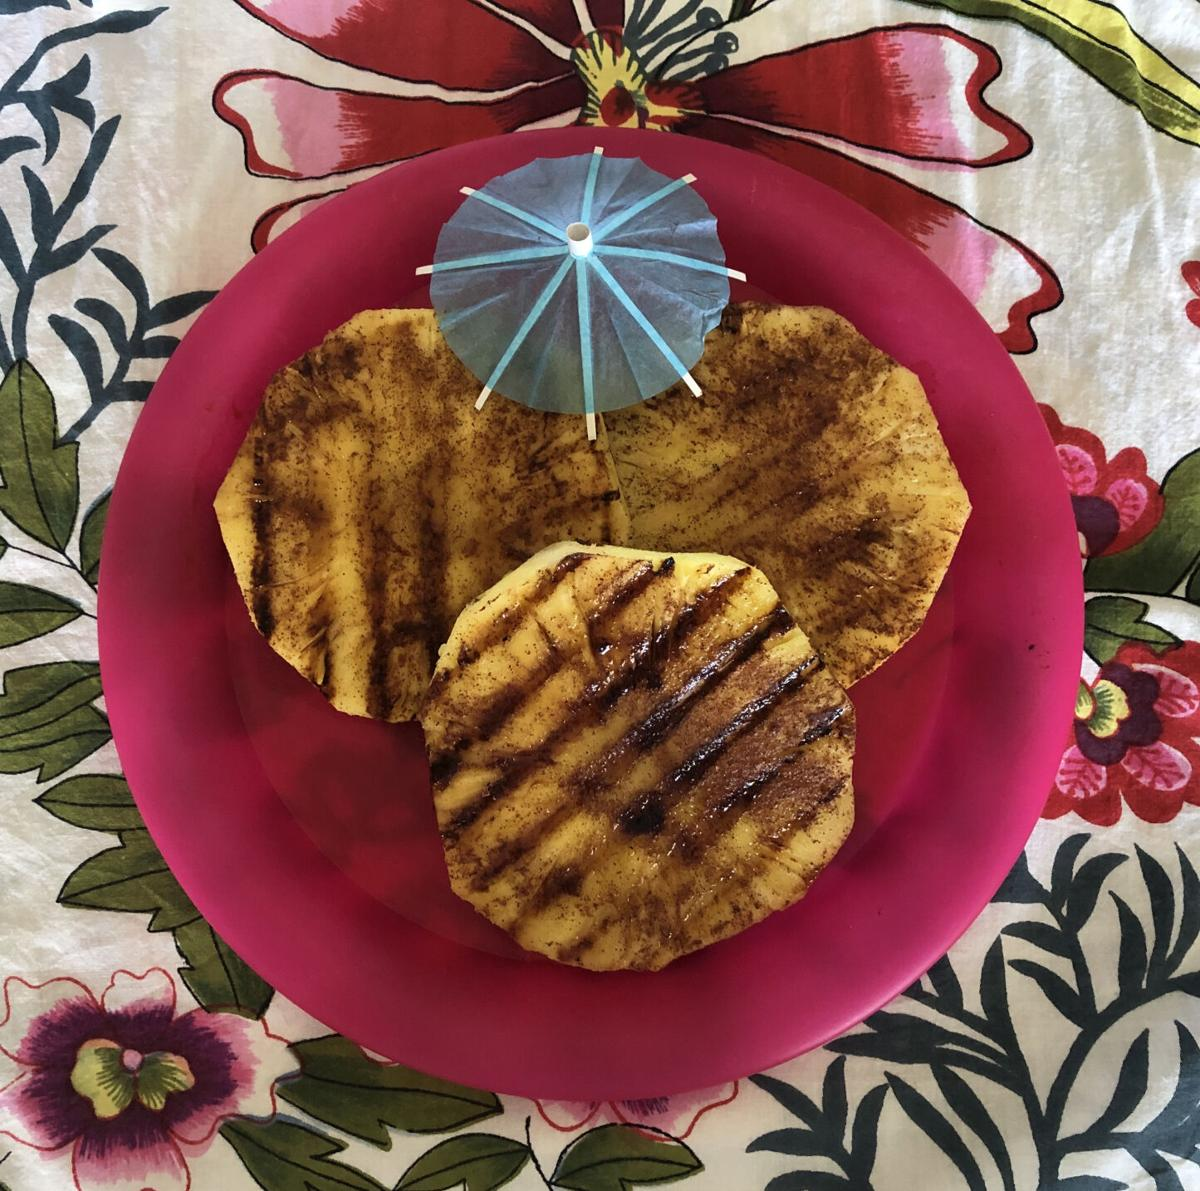 Katherine Compton made grilled pineapple similar to the dish she tried at Gauchos Do Sul in Houston